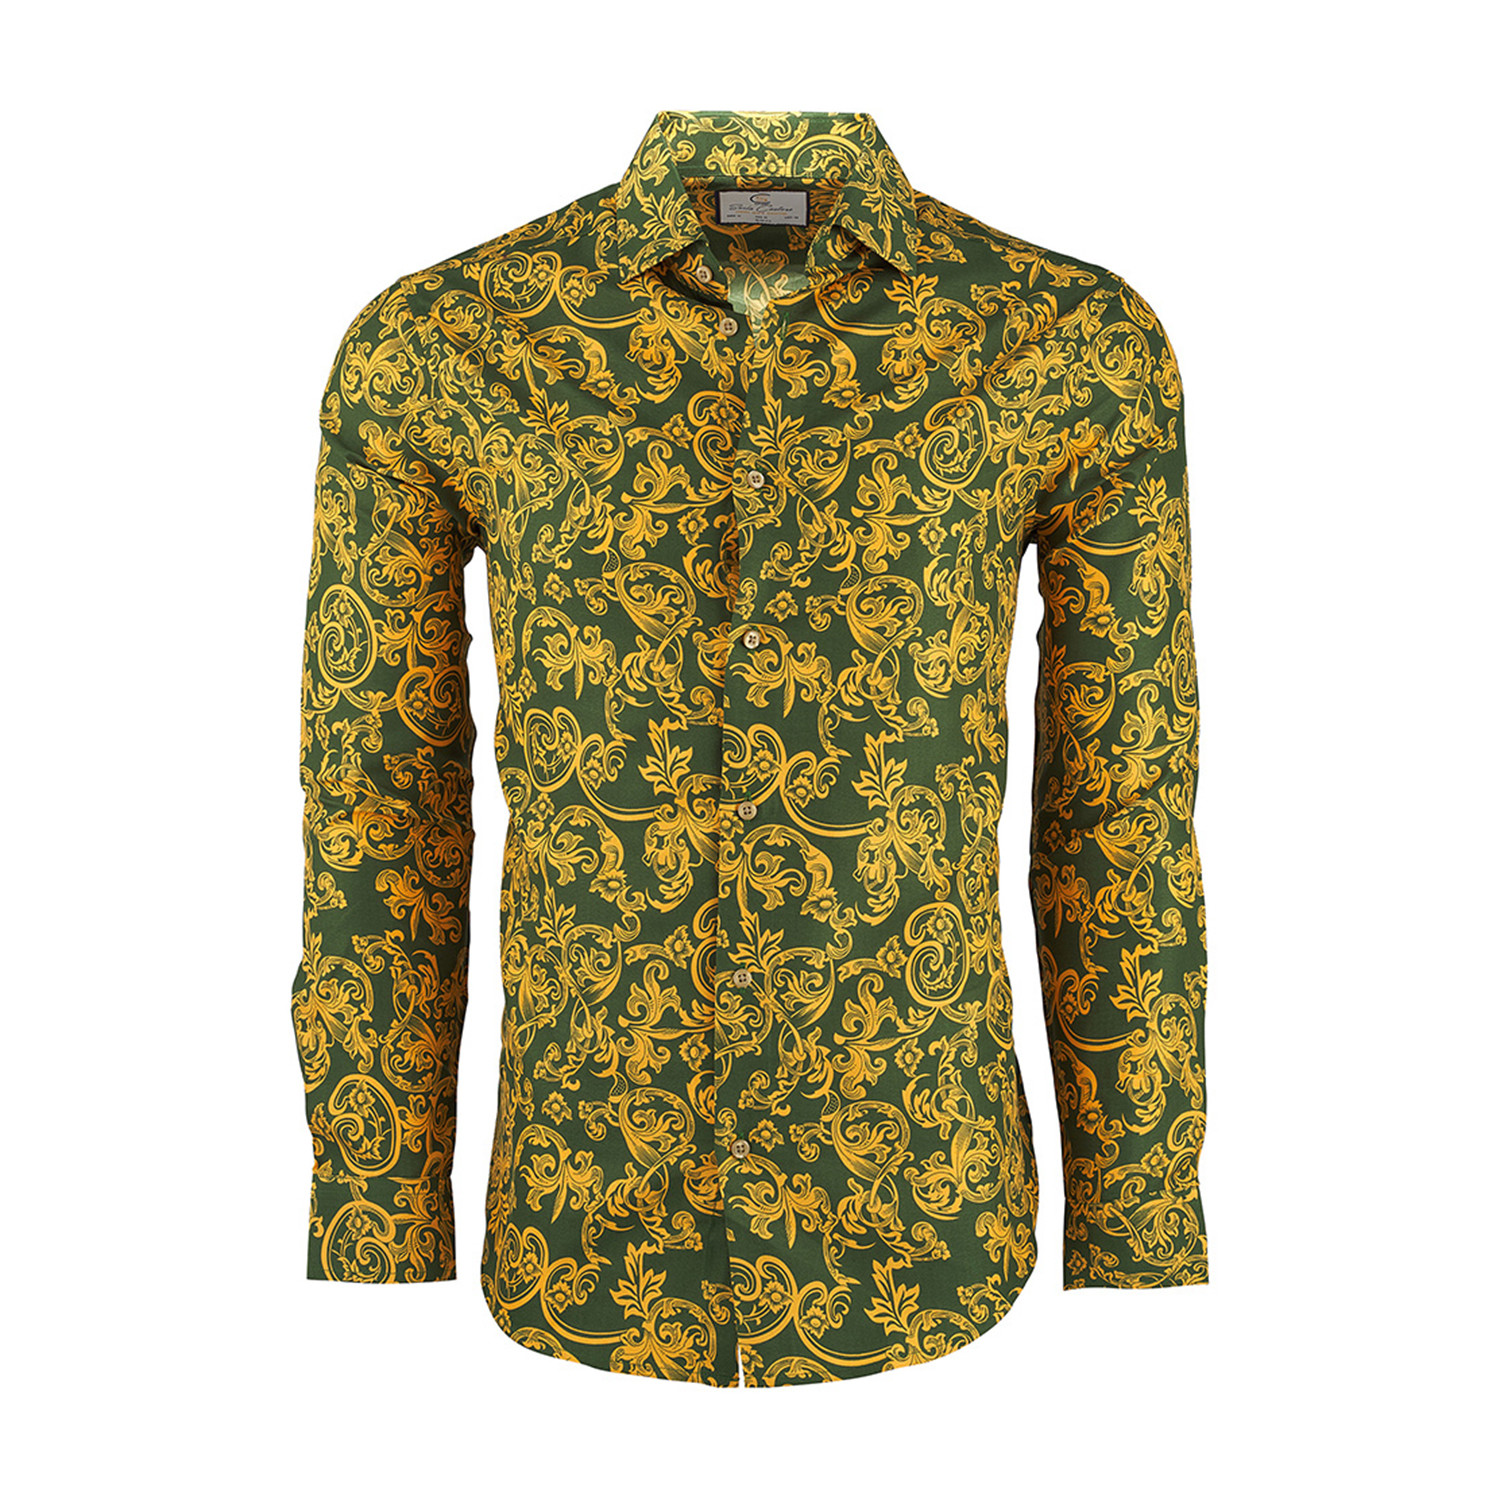 c6ee749d Berry Casual Long-Sleeve Button-Down Shirt // Green (M) - Suslo ...